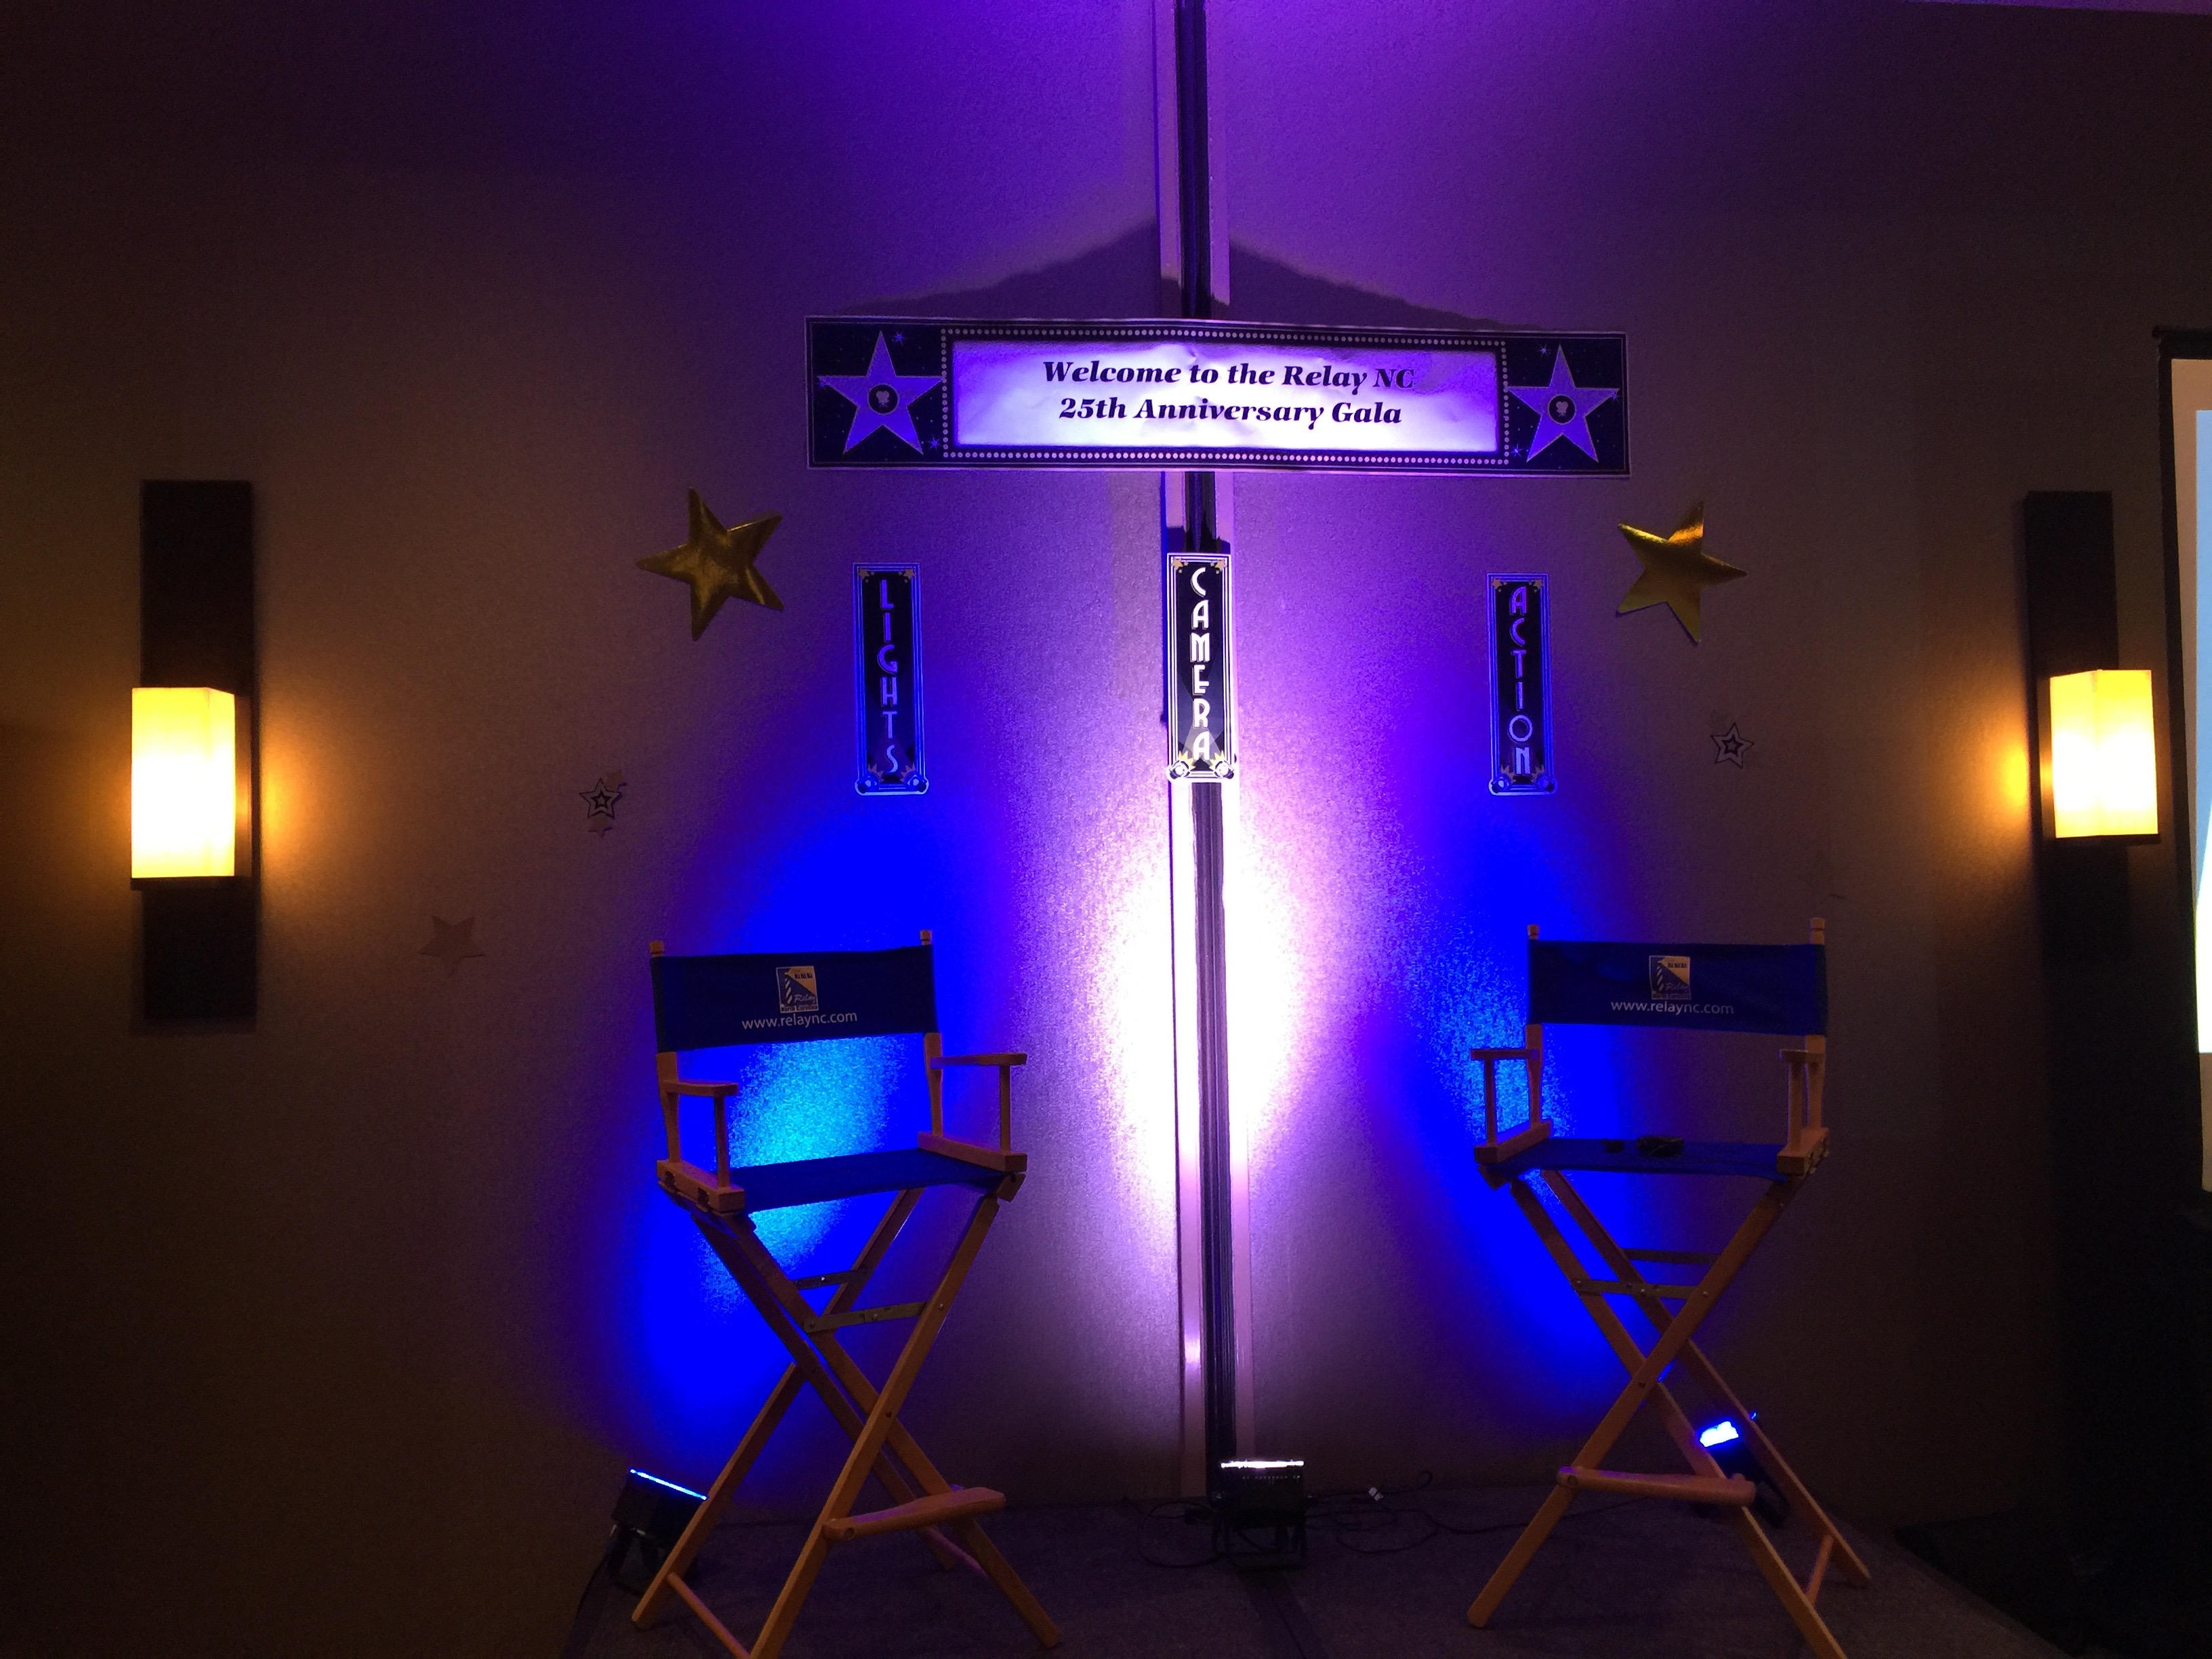 "In a dark room, on a stage, there are two director's chairs on either end with blue lights illustrating them. Above the platform is a sign that says ""Welcome to Relay NC 25th Anniversary Gala!"" with smaller signs below that proclaiming ""Lights!"", ""Cameras!"", and ""Actions."" There are also two golden stars on either side."